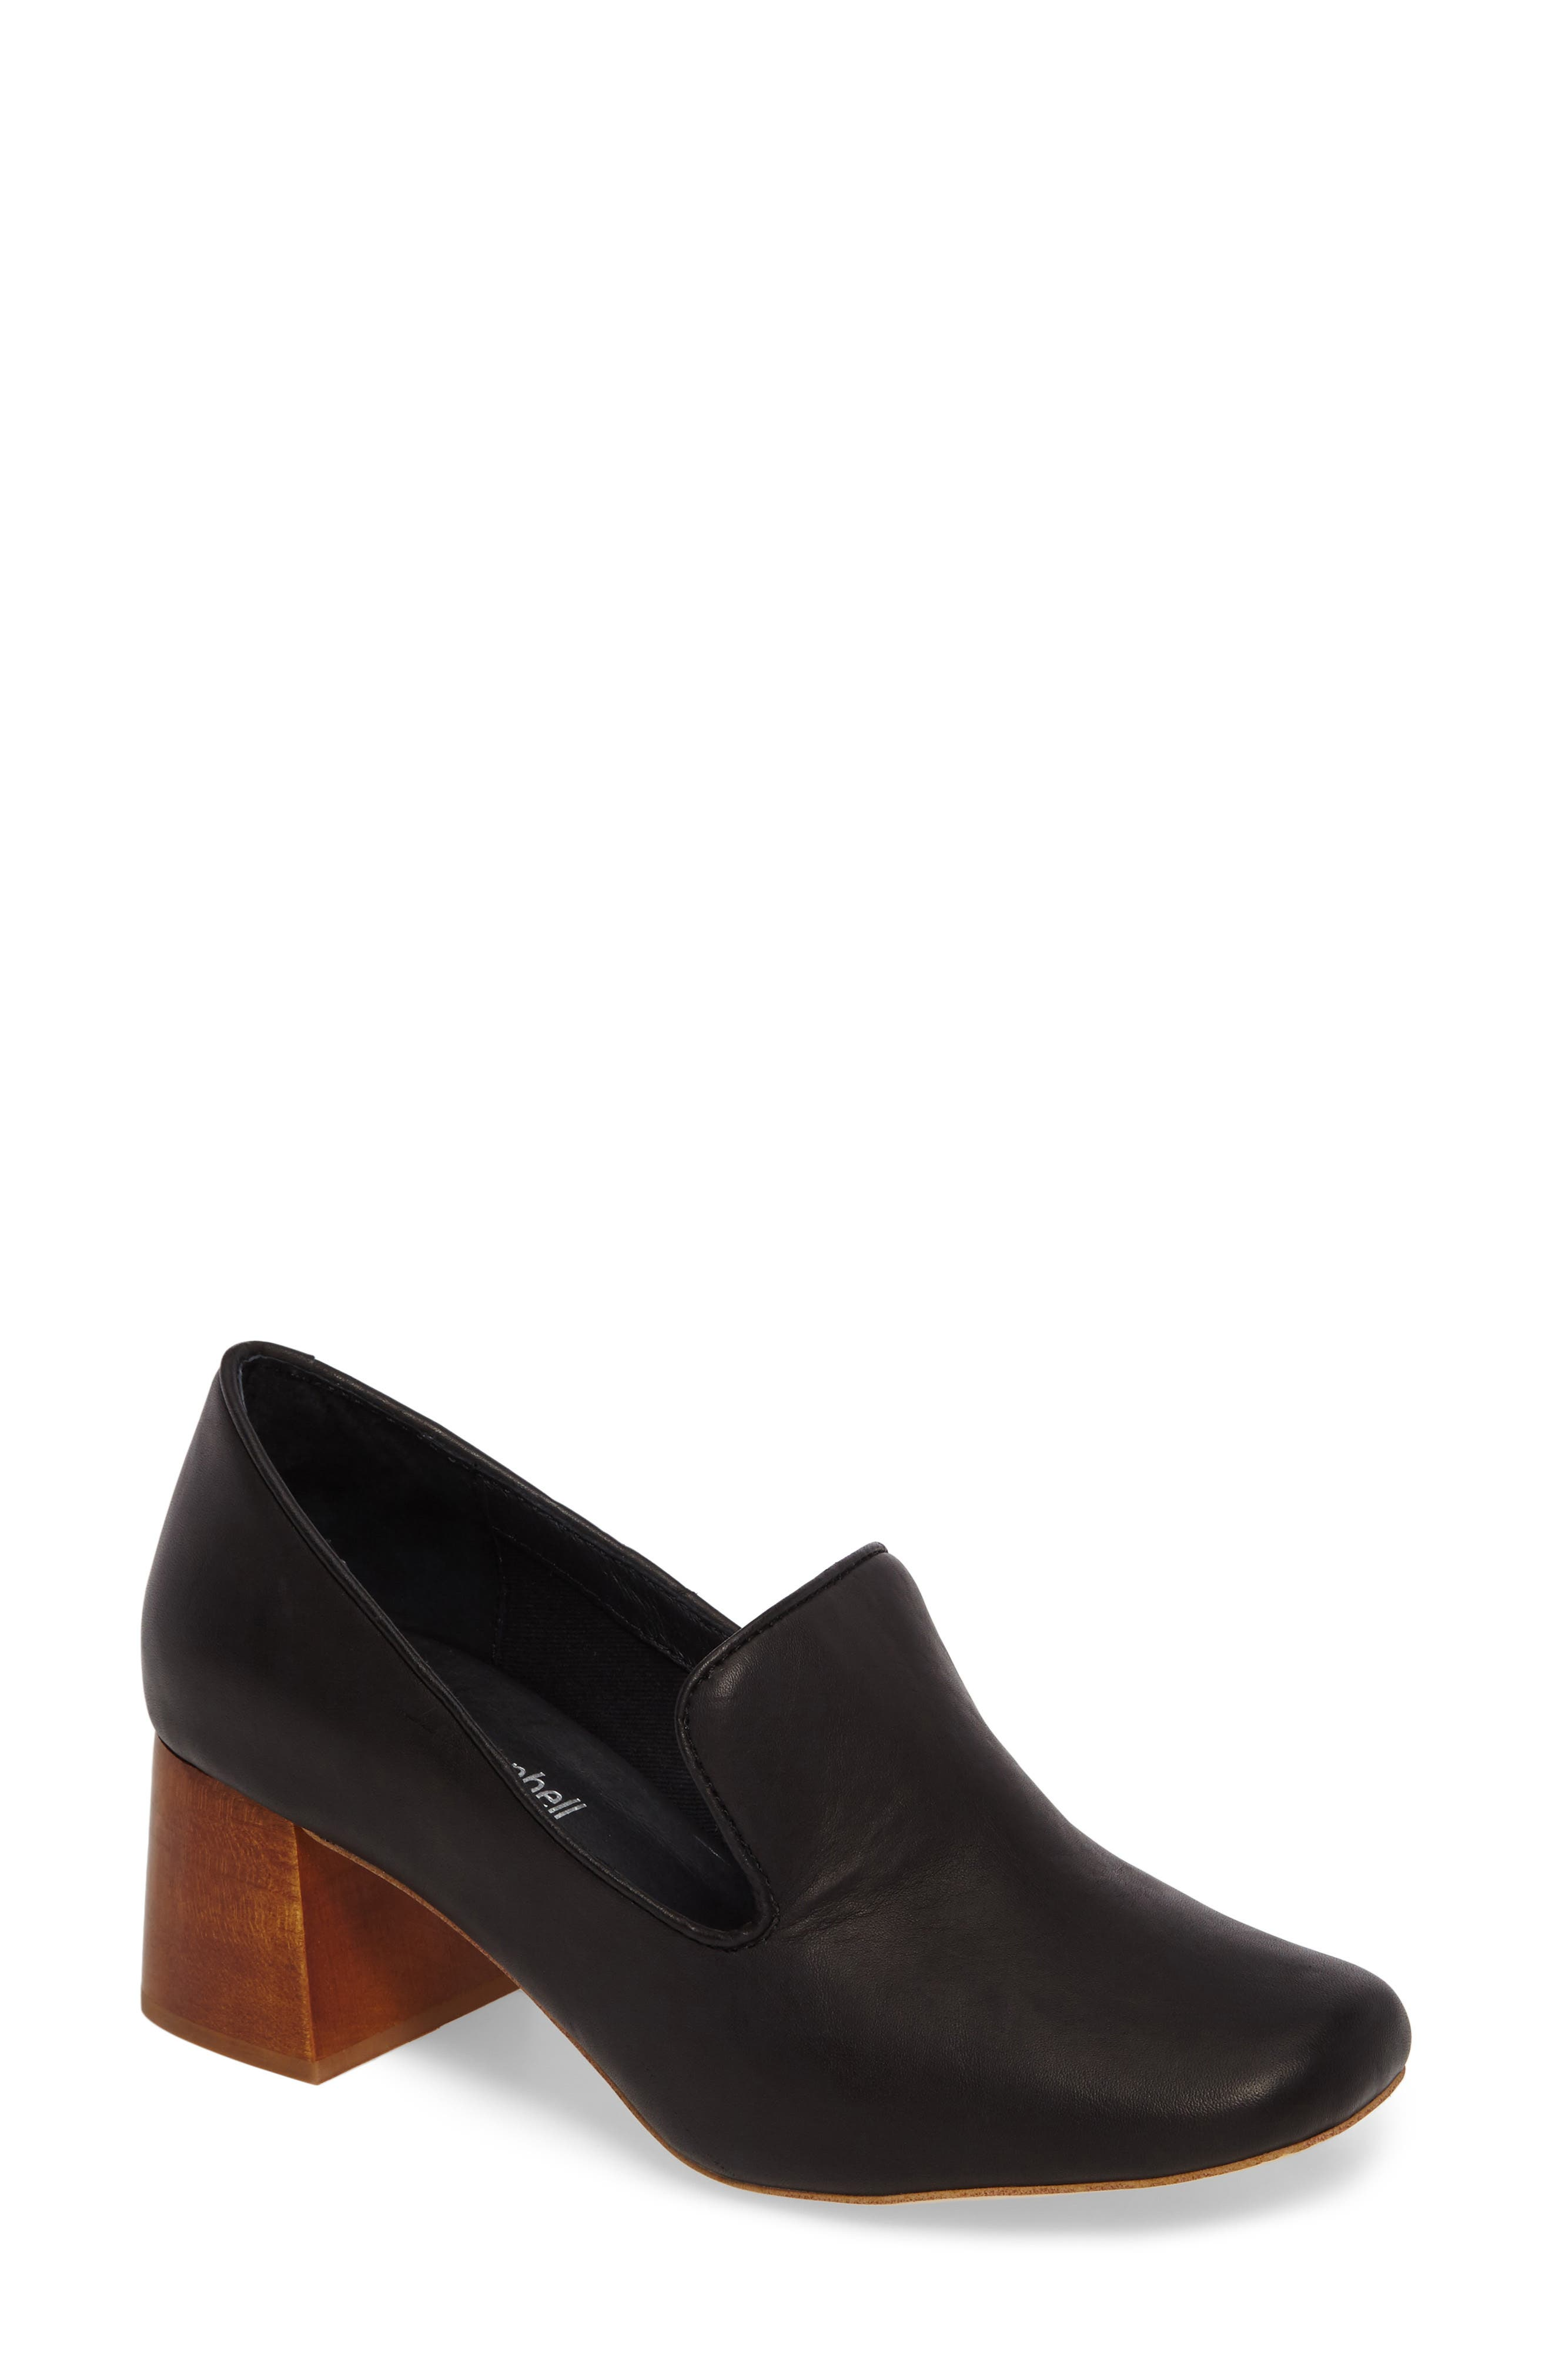 Alternate Image 1 Selected - Jeffrey Campbell Lister Flared Heel Loafer Pump (Women)